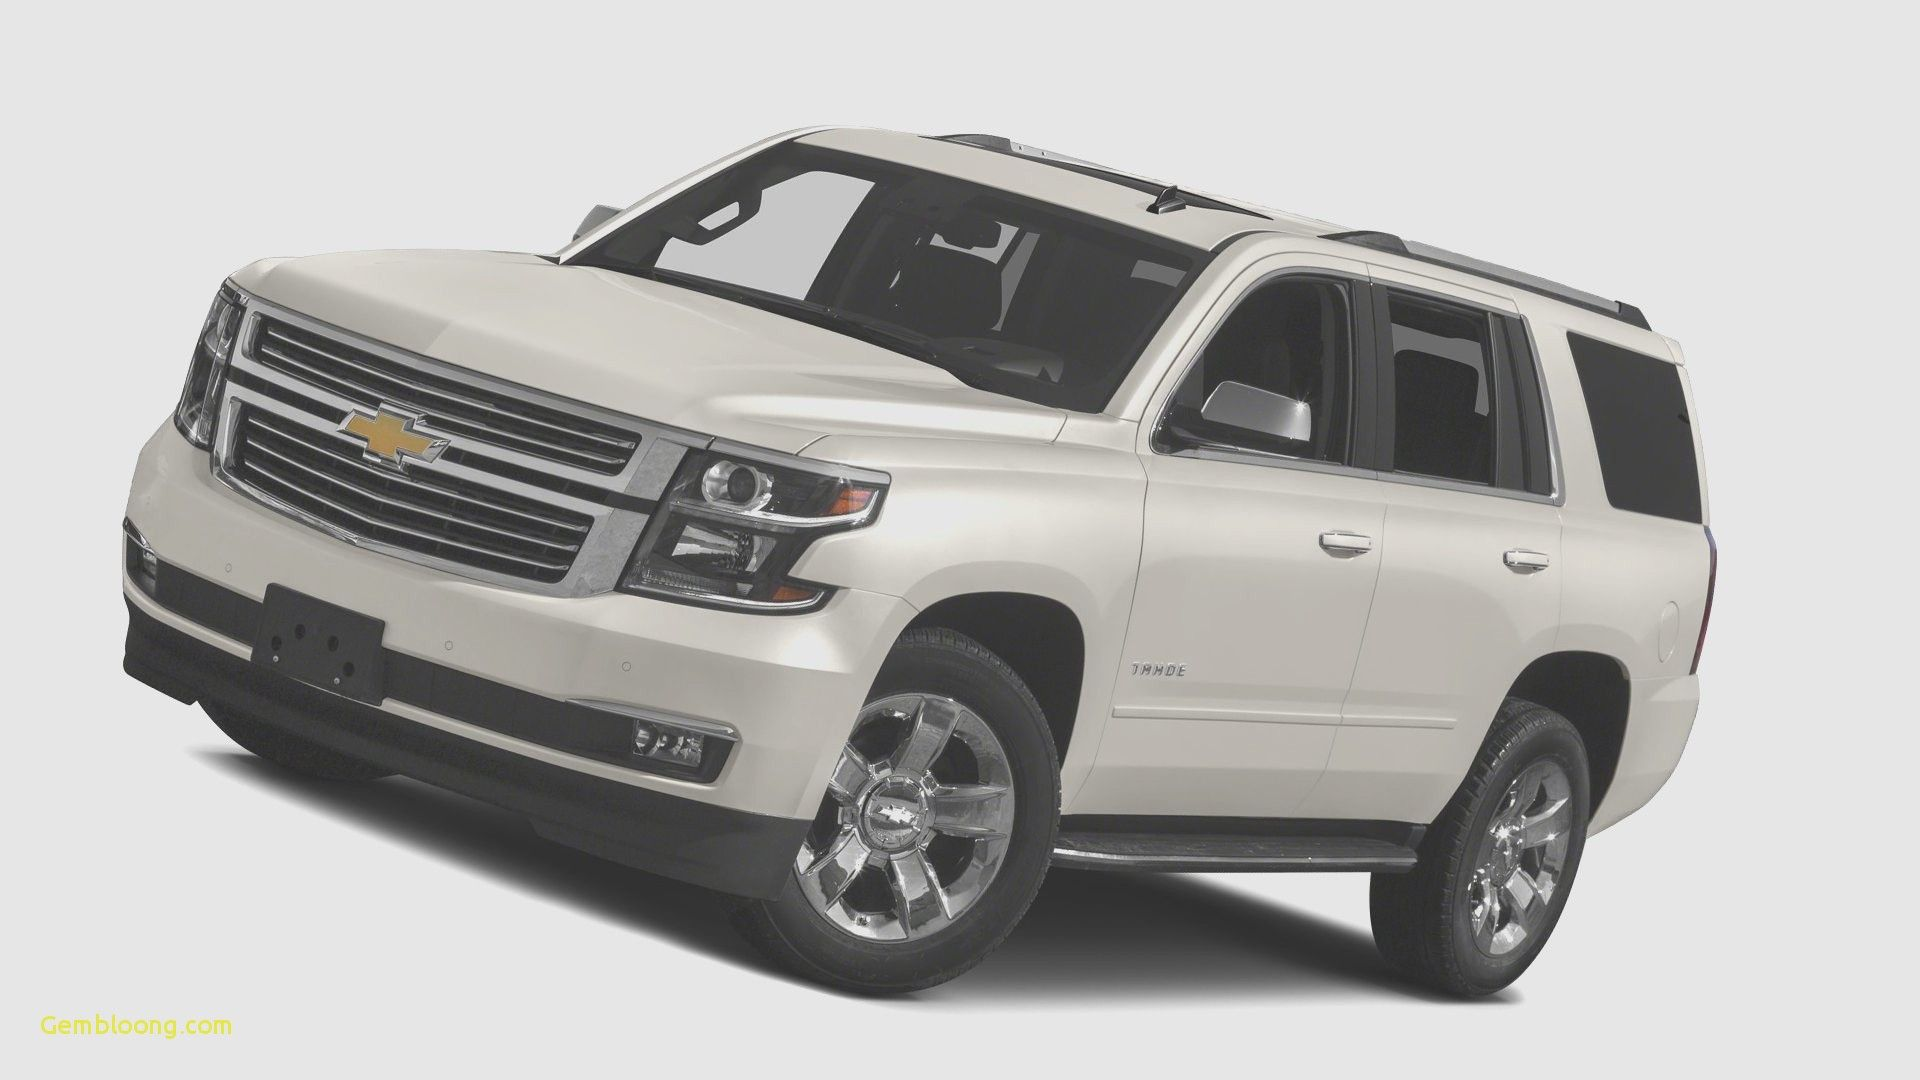 2018 Chevy Suburban Check More At Http Www Autocarblog Club 2018